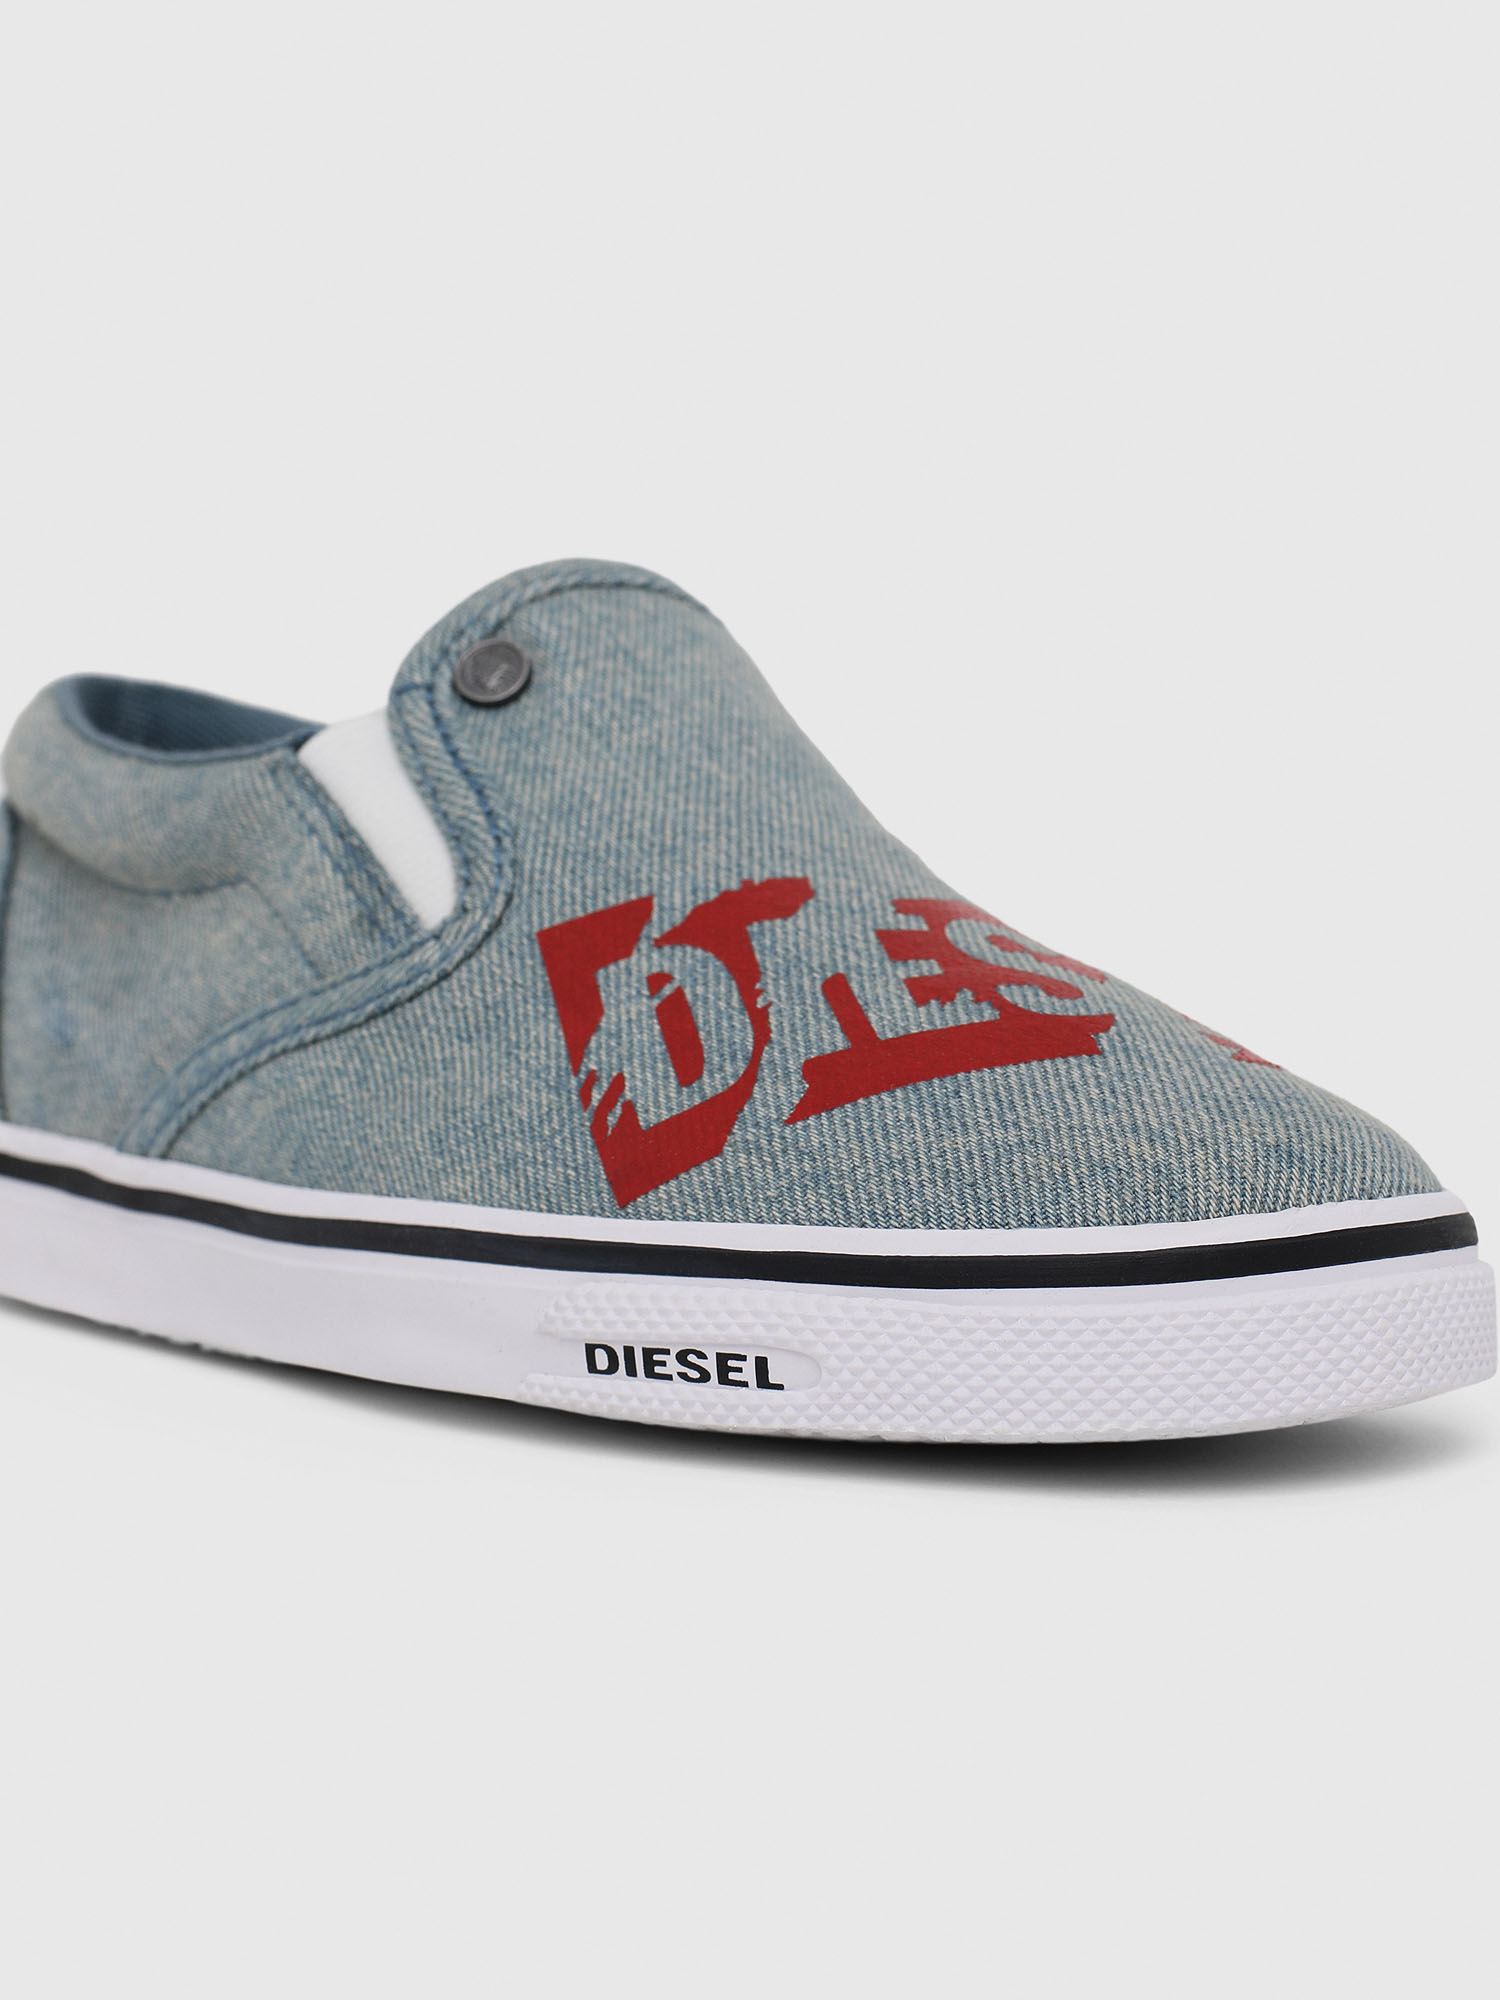 Diesel - SLIP ON 21 DENIM YO,  - Footwear - Image 4